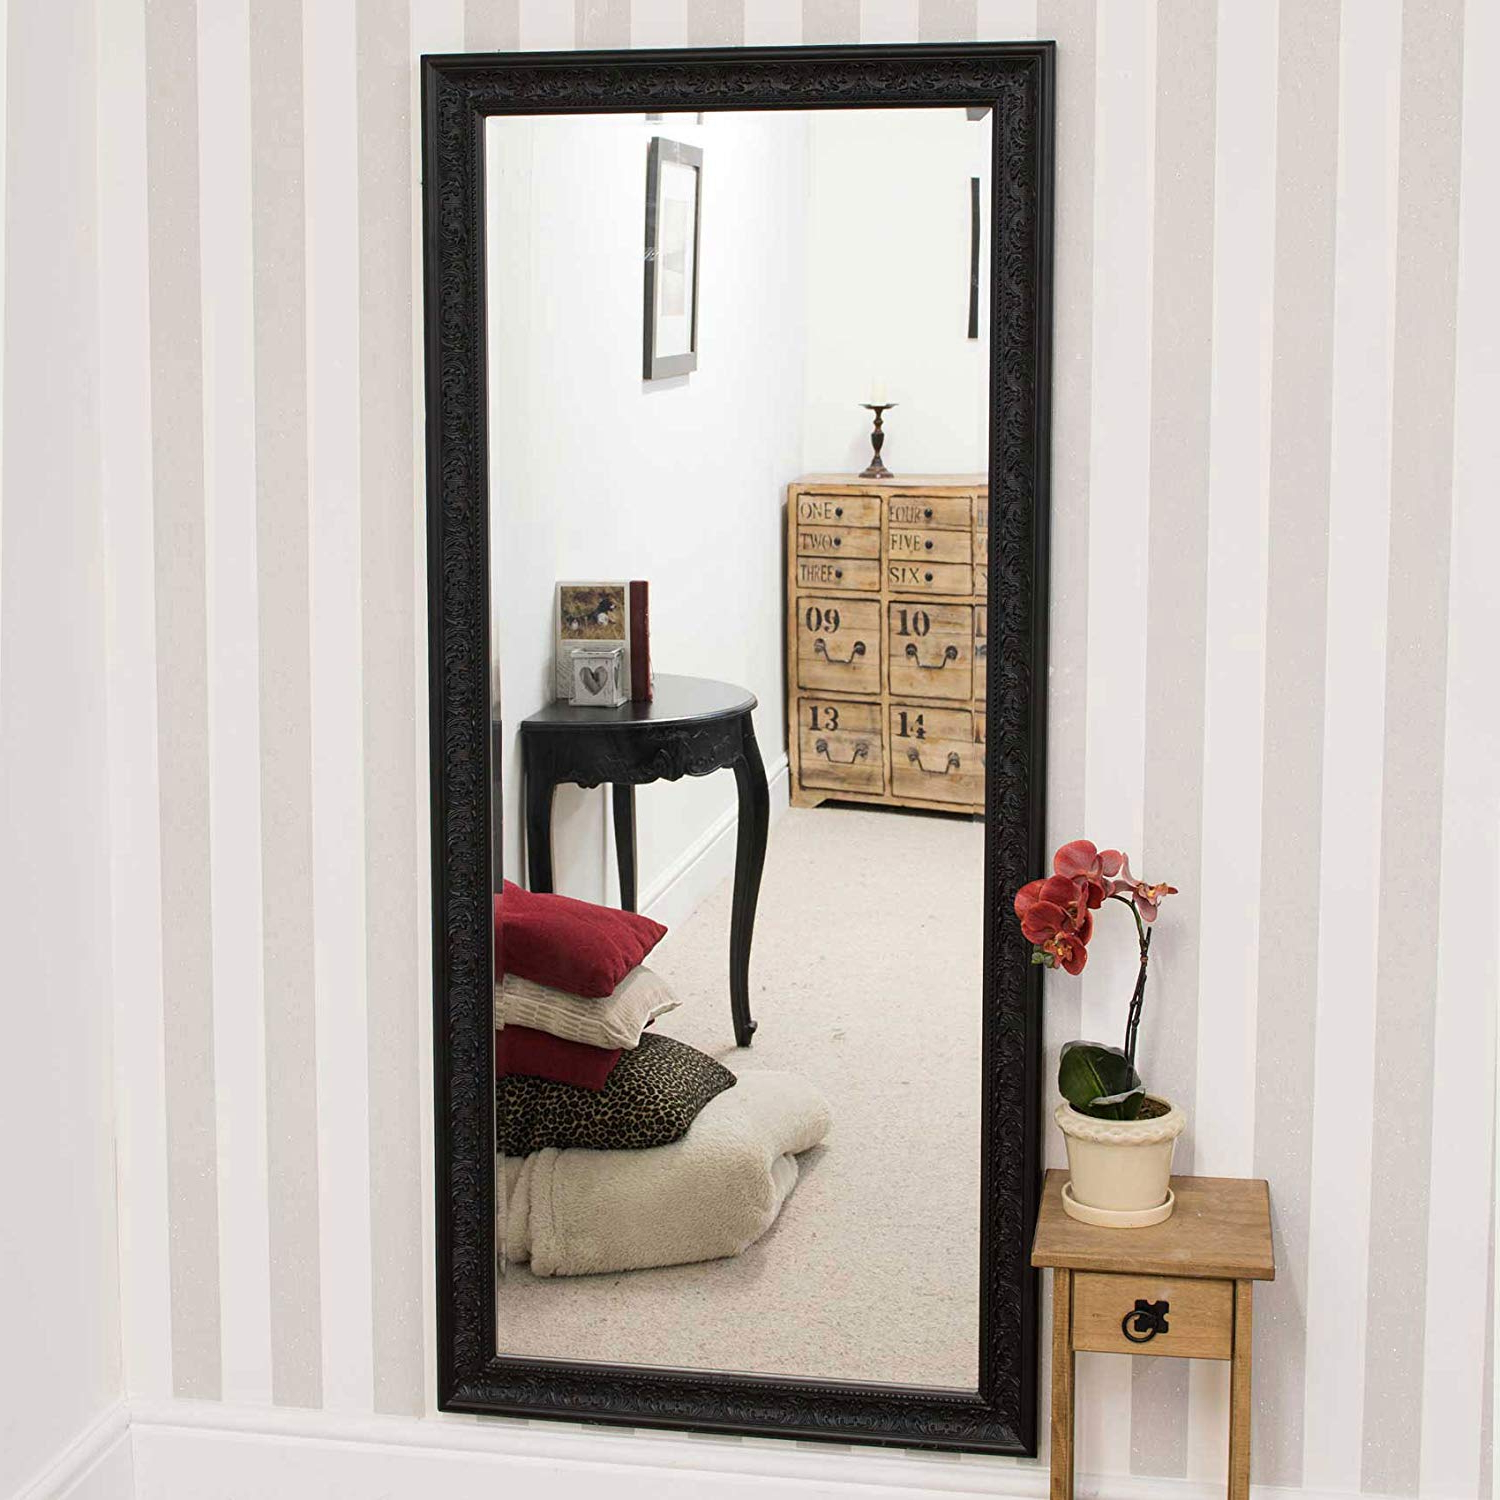 Most Recent Large Antique Design Full Length Wall Mirror, Black, 160 X 73 Cm In Large Full Length Wall Mirrors (View 16 of 20)